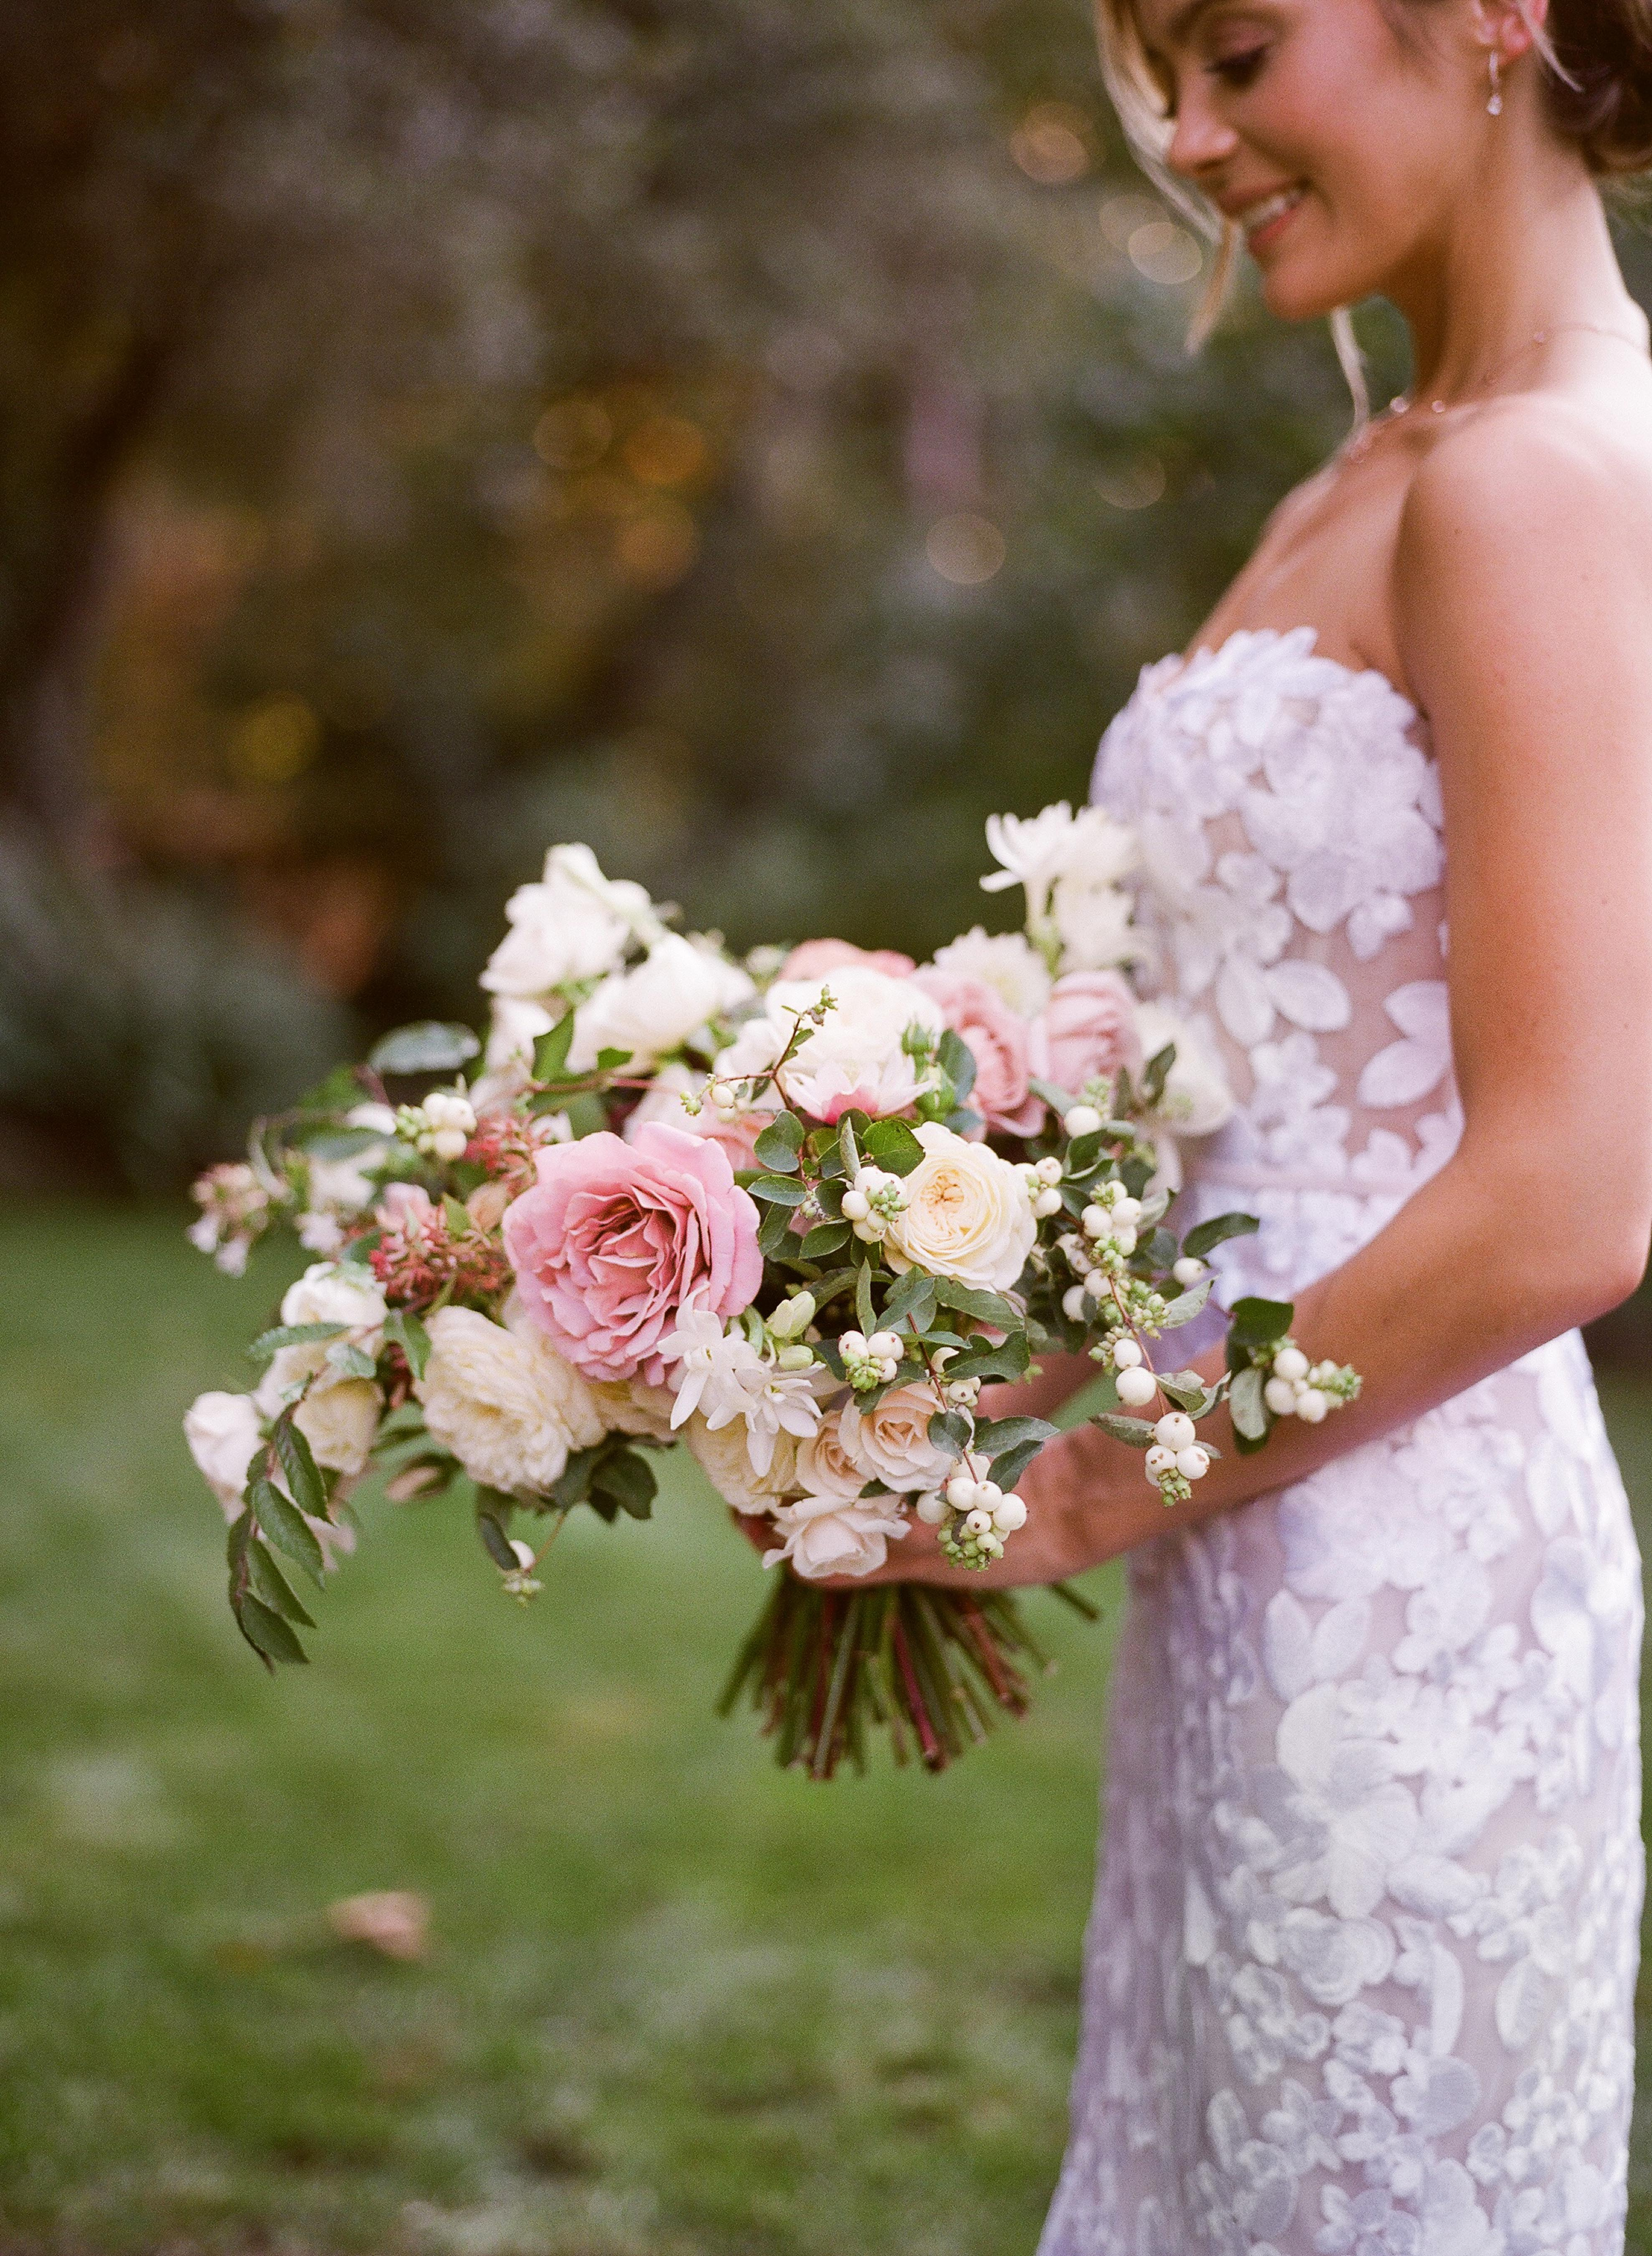 What Should The Bride Do With Her Wedding Bouquet During The